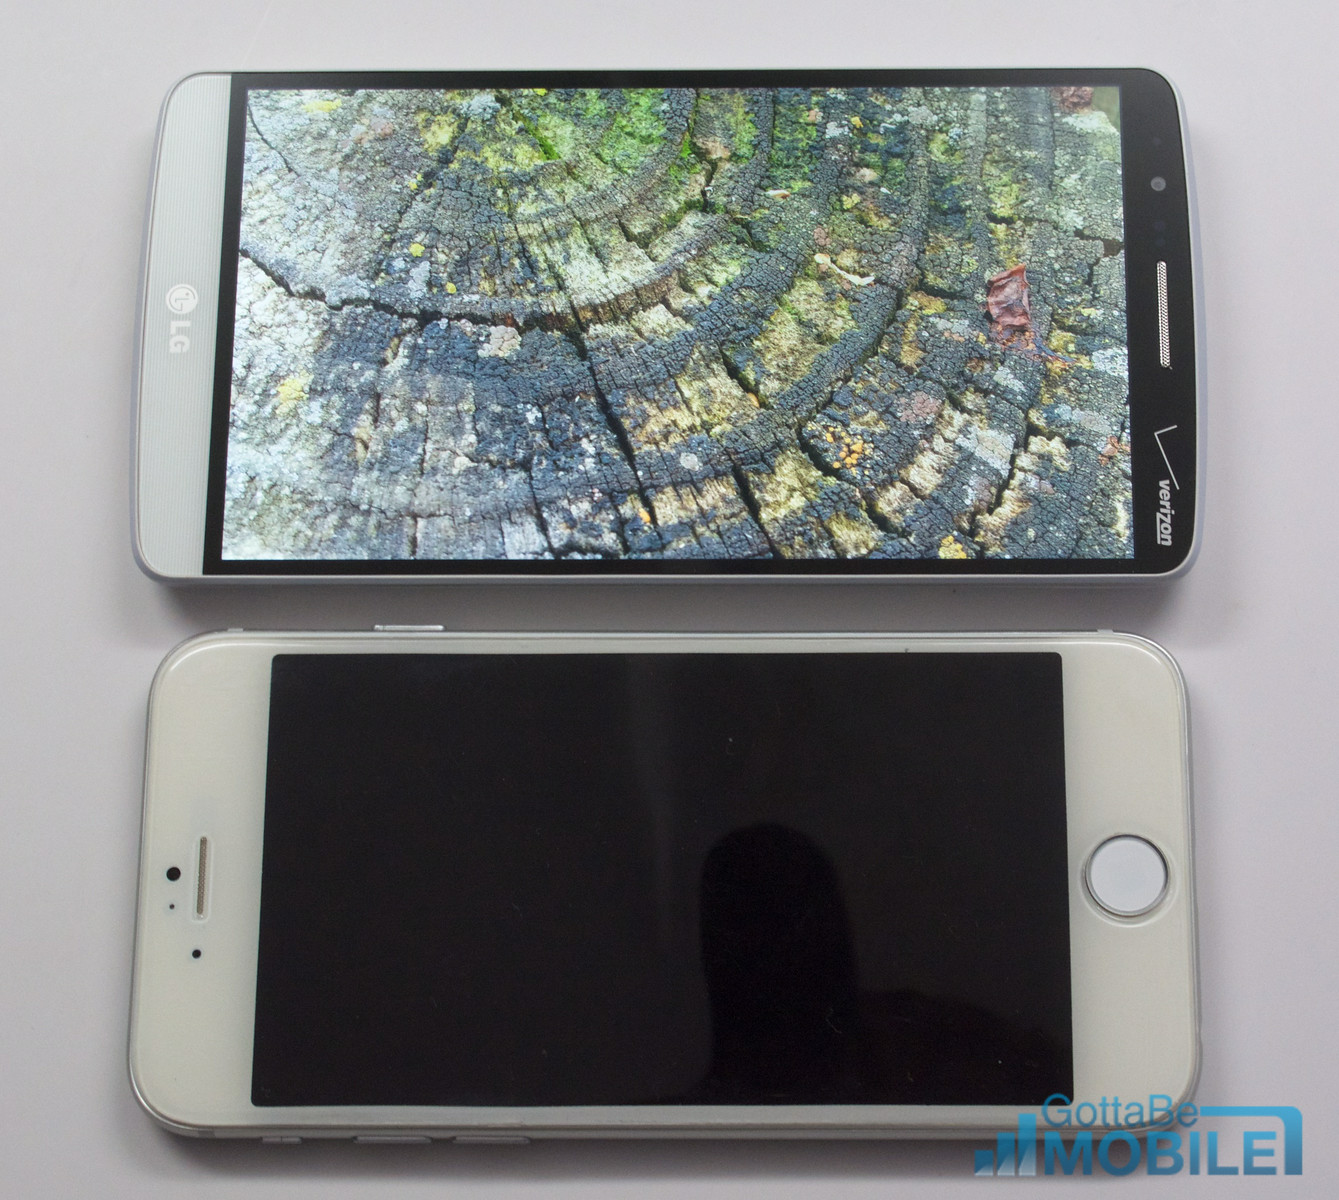 LG G3 vs iPhone 6 Video: 5 Key Differences